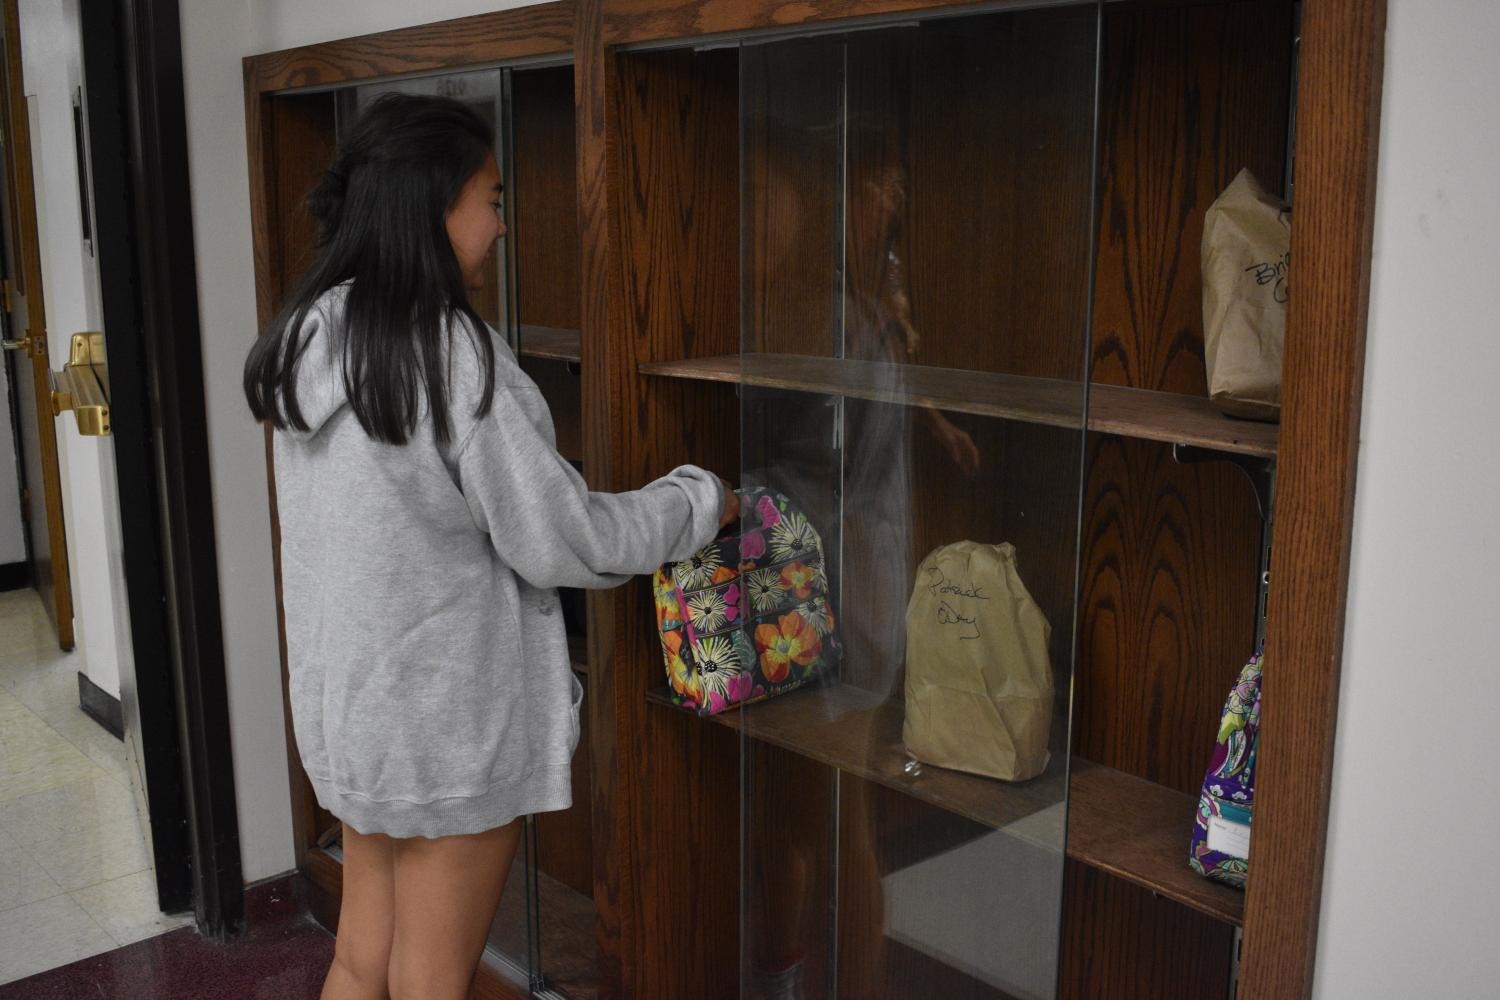 Now when parents drop off lunches, they go on the shelf outside the bookstore,  so kids can pick their lunches up during lunch periods.